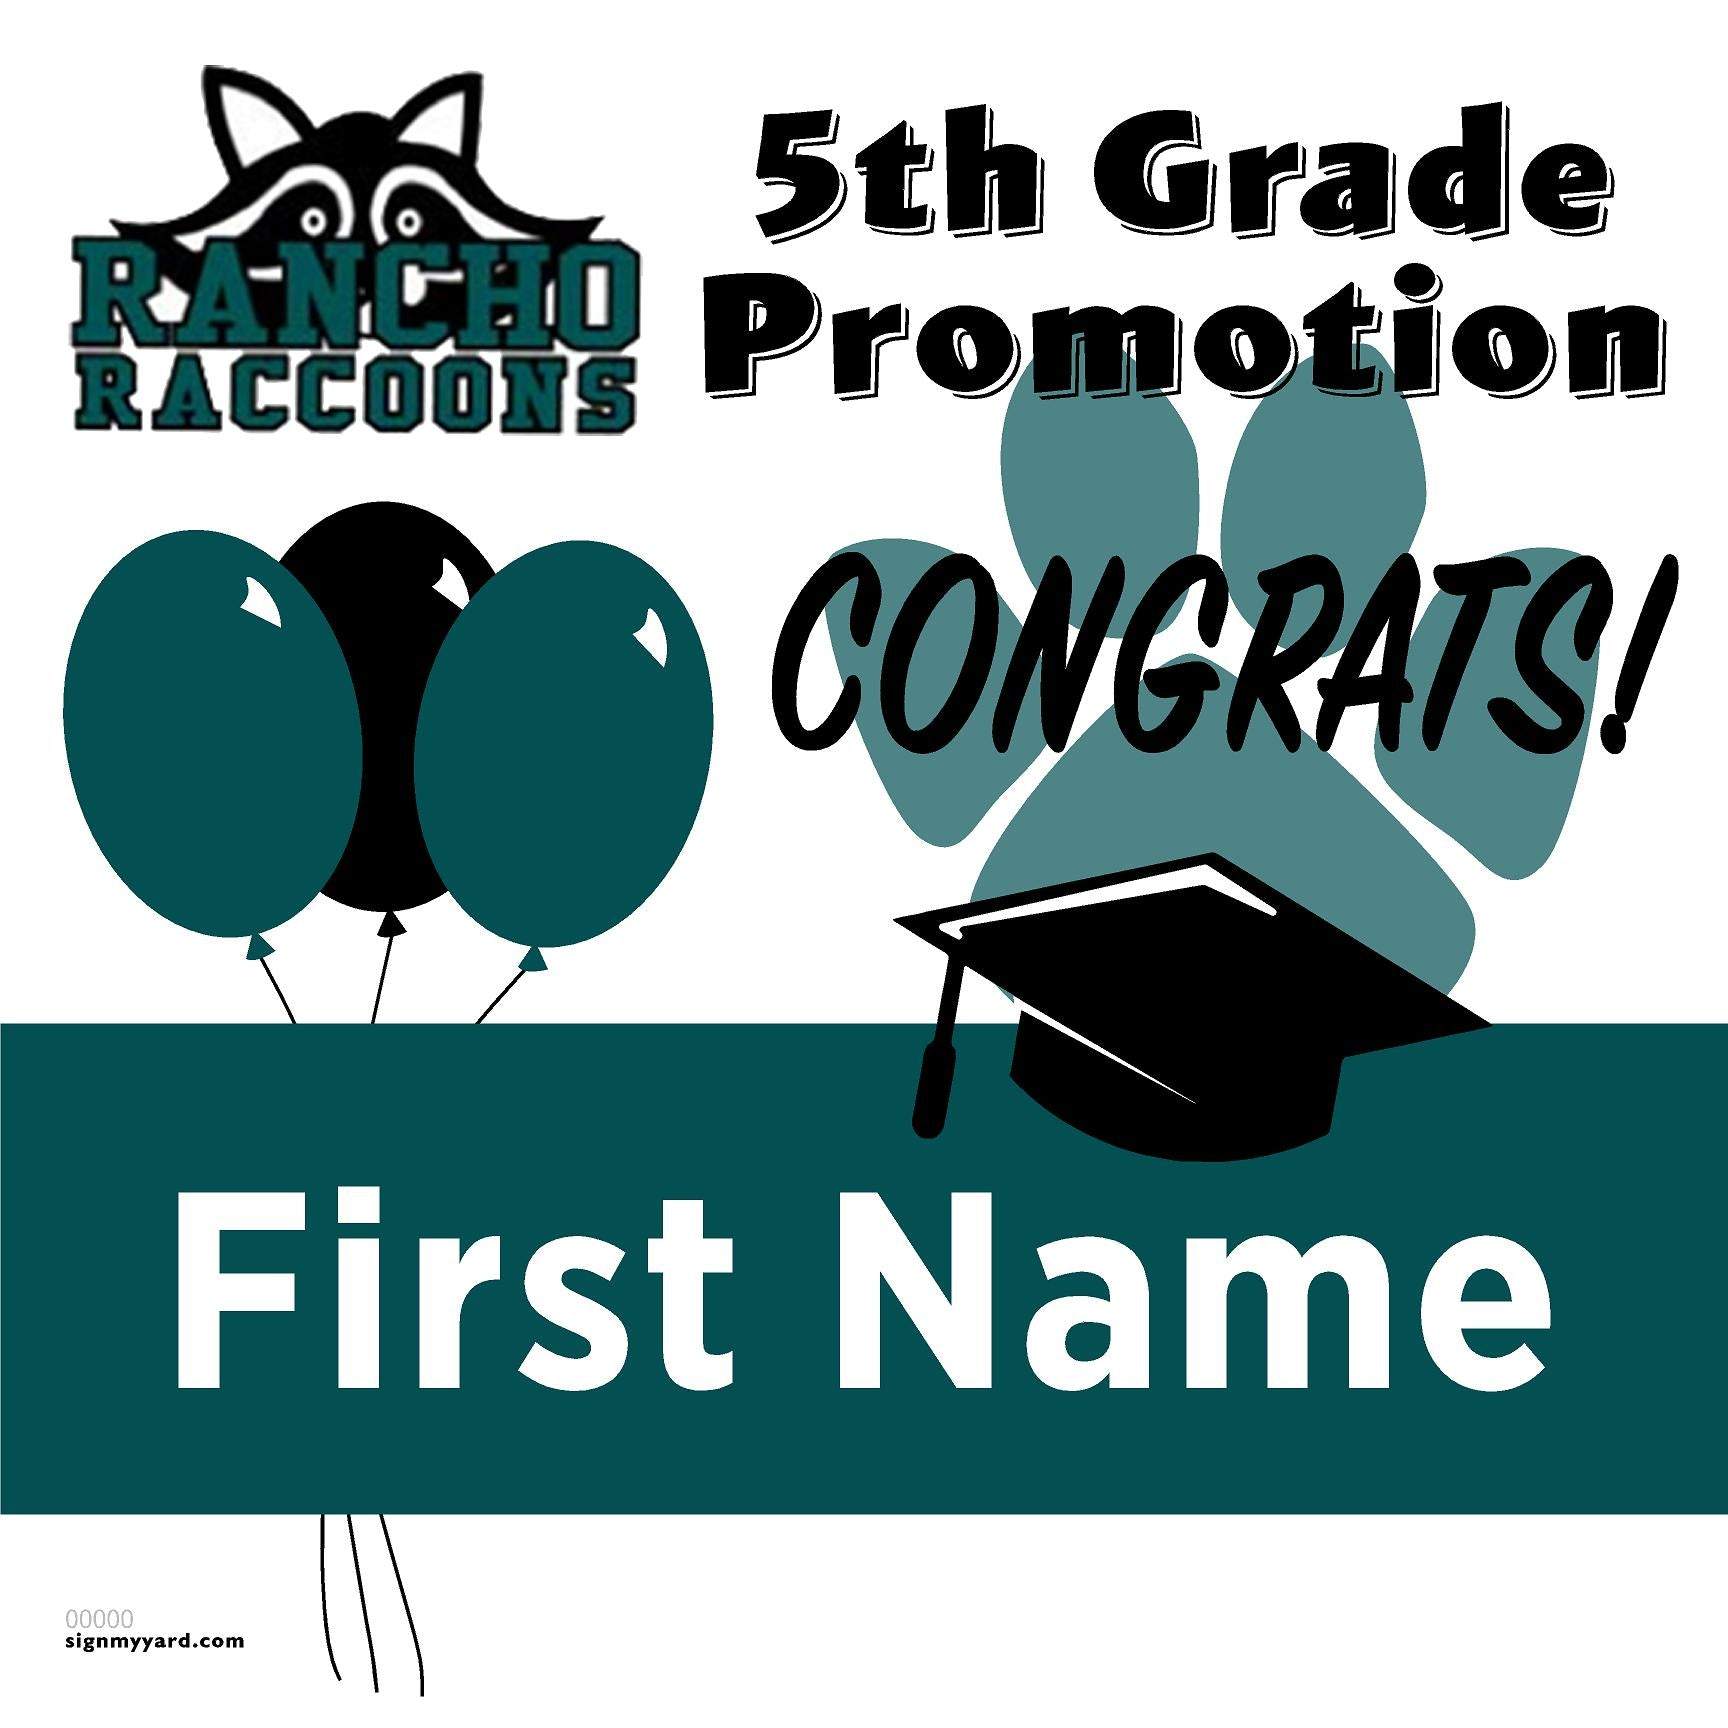 Rancho Las Positas Elementary School 5th Grade Promotion 24x24 #shineon2027 Yard Sign (Option A)